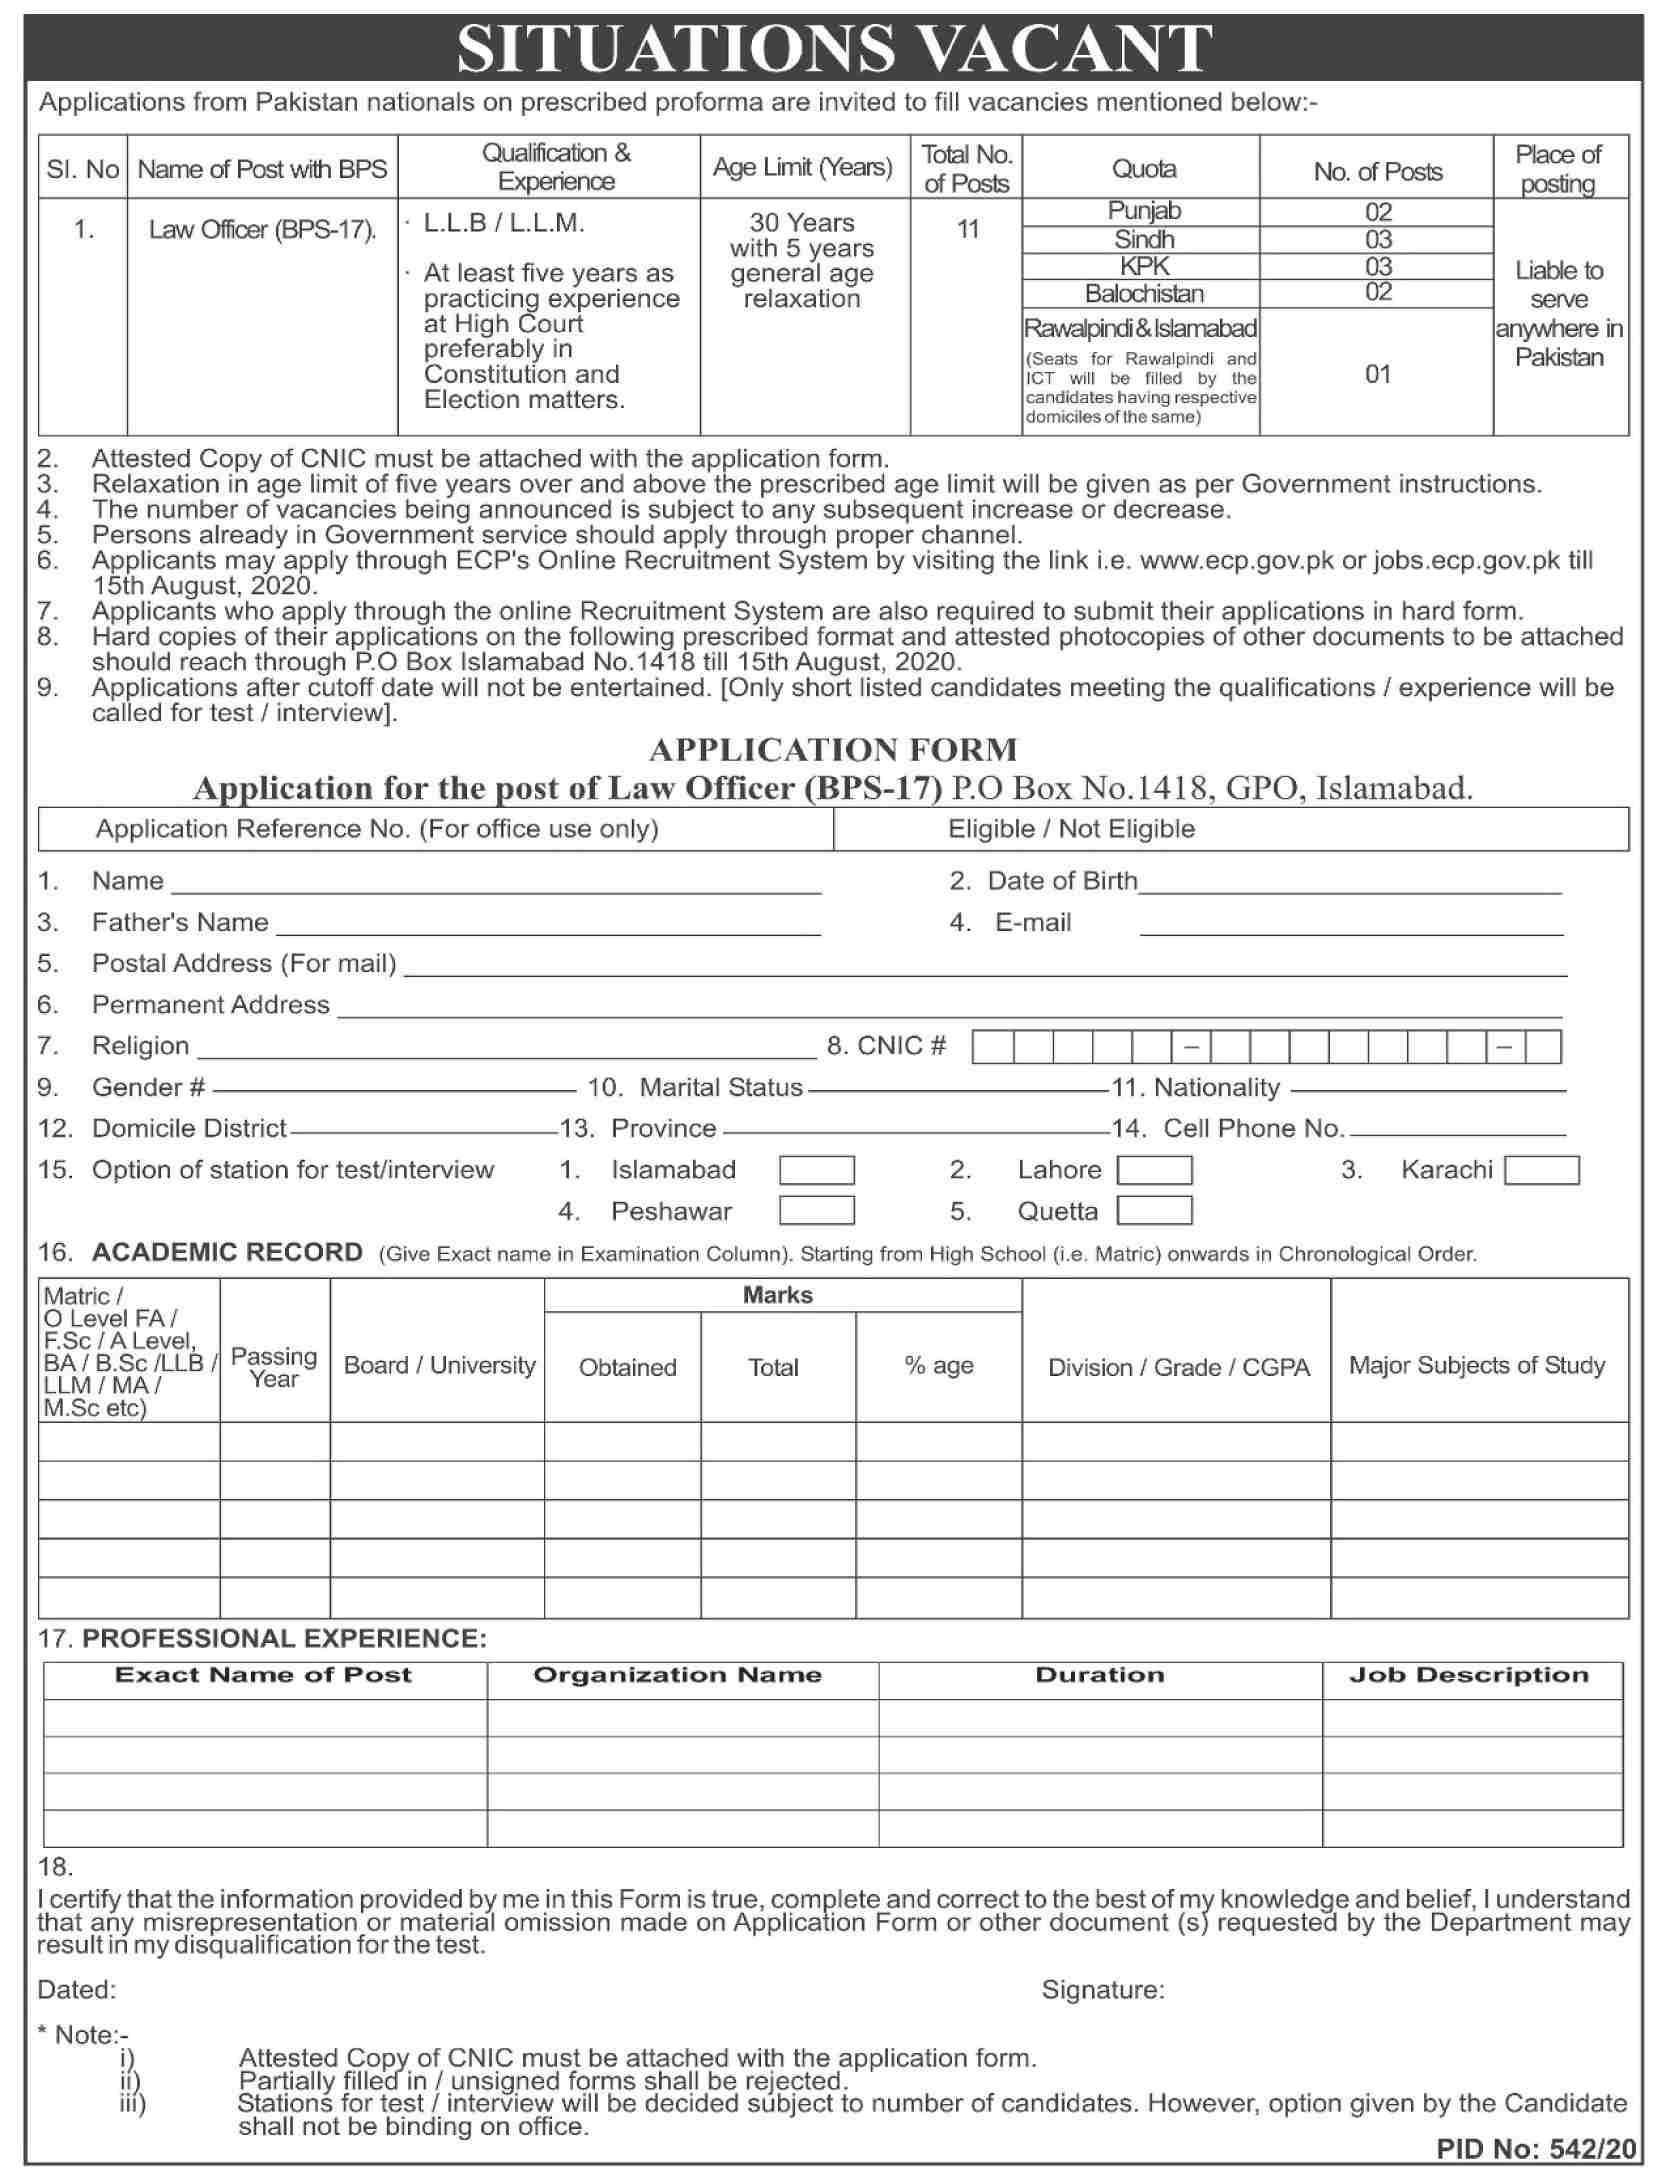 Election Commission Of Pakistan jobs newspaper ad for Law Officer in Islamabad